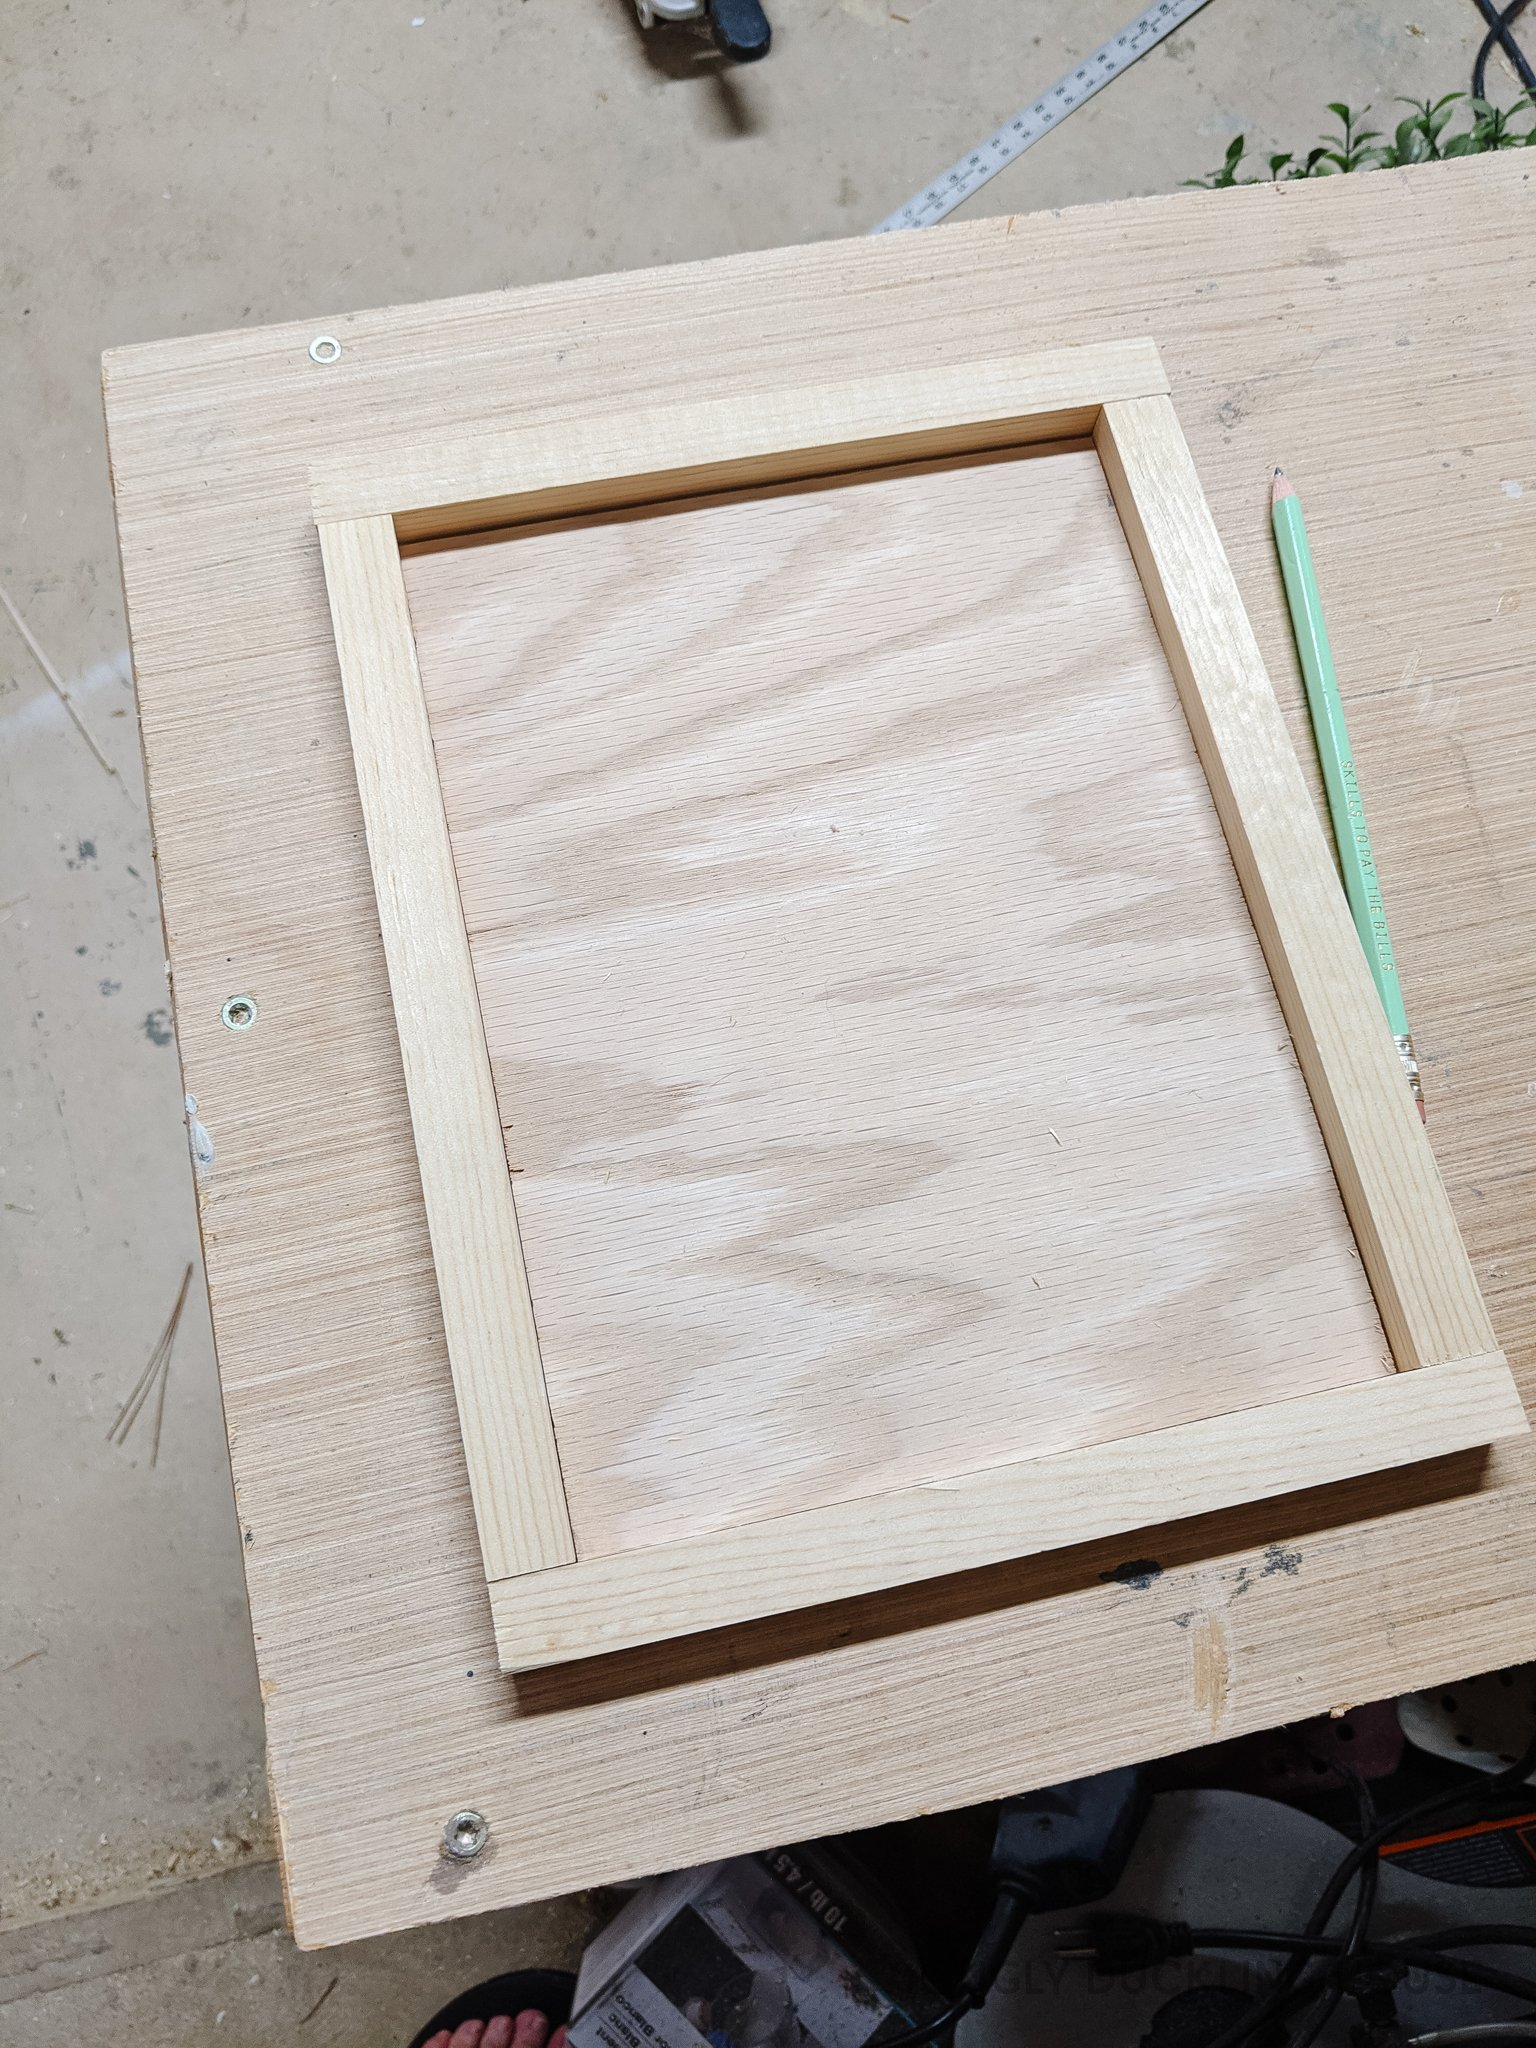 cut a frame to fit around the backer